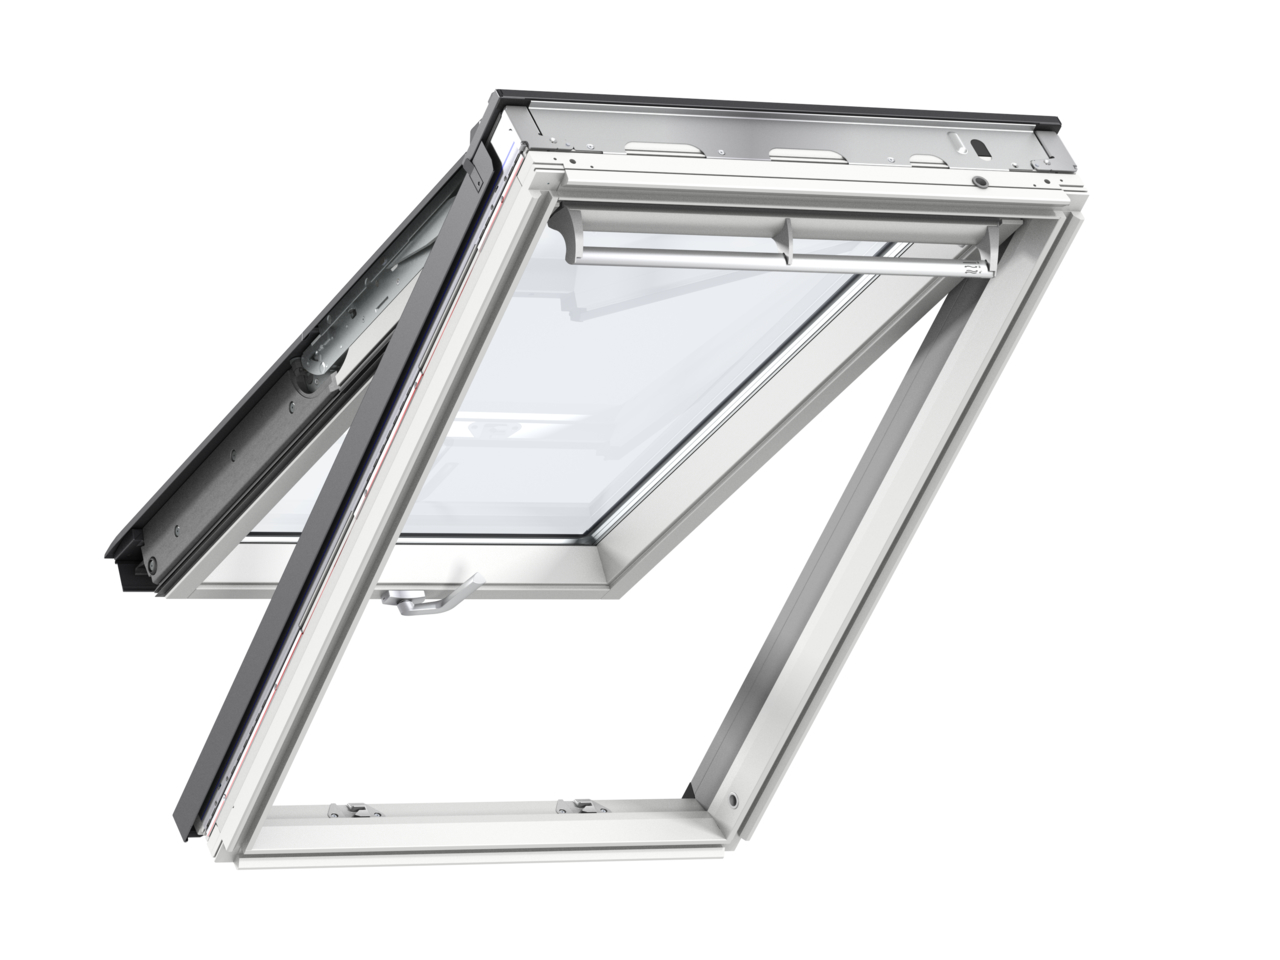 Velux GPL UK04 1340 x 980mm Top Hung Standard 70Pane Roof Window - White Painted